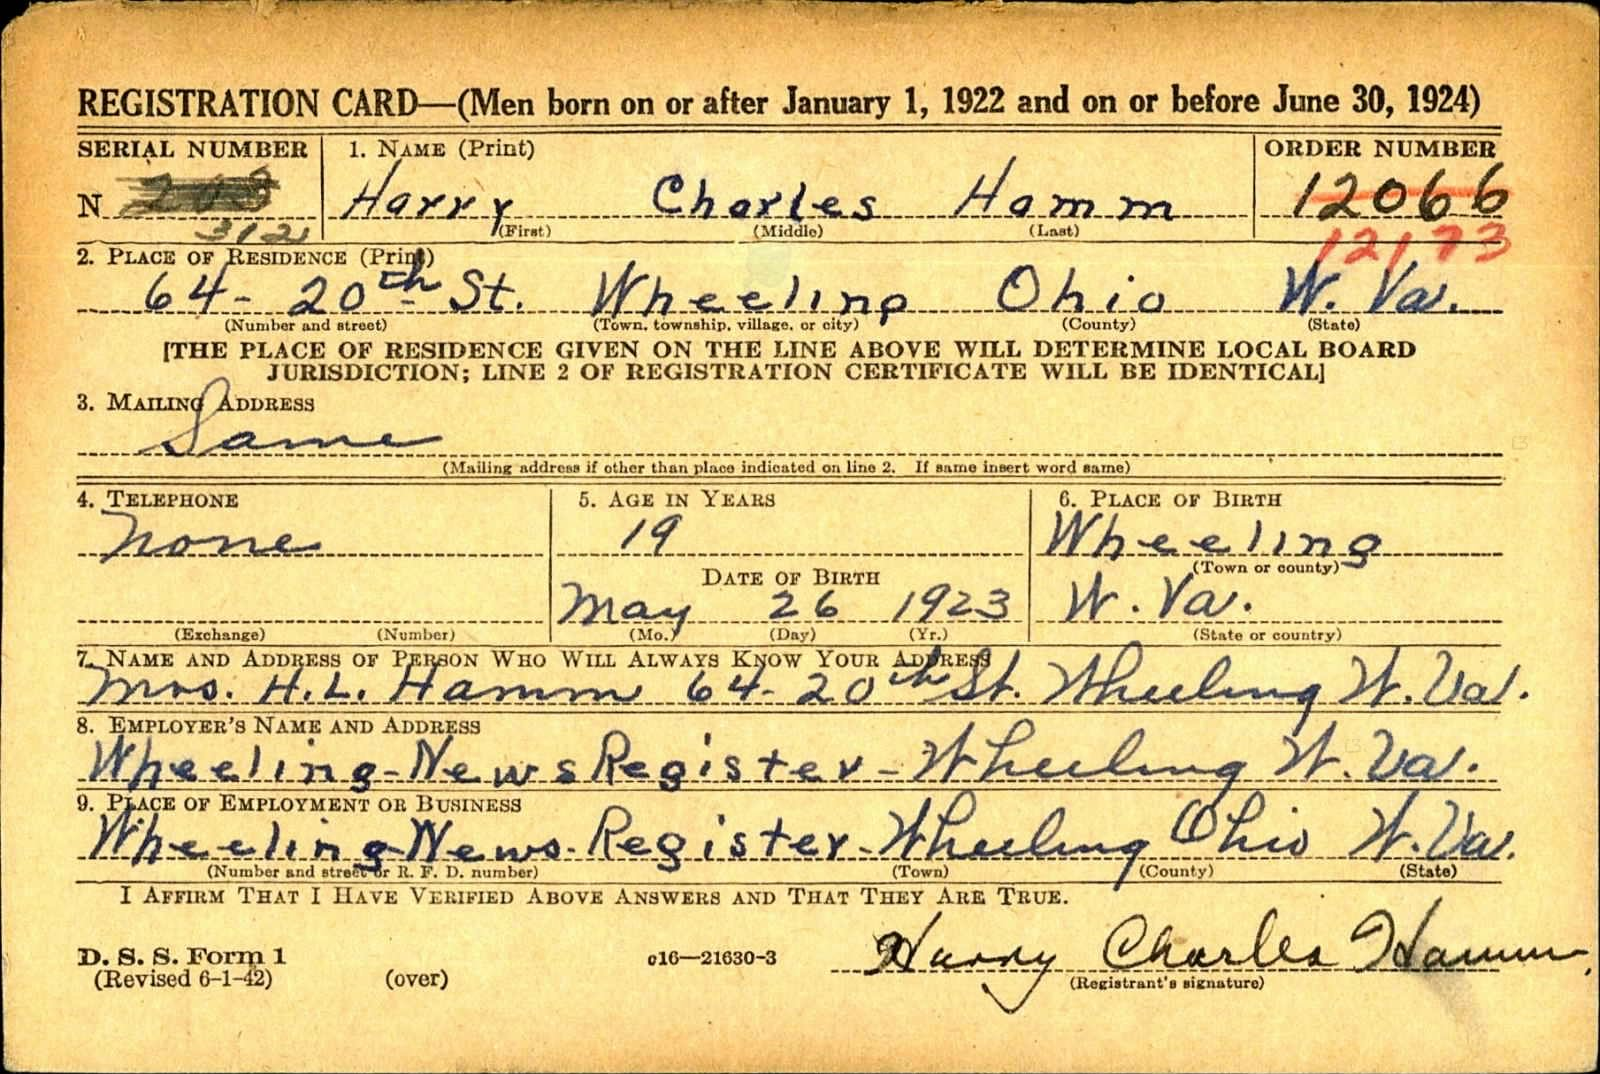 Military registration card for Harry Hamm.